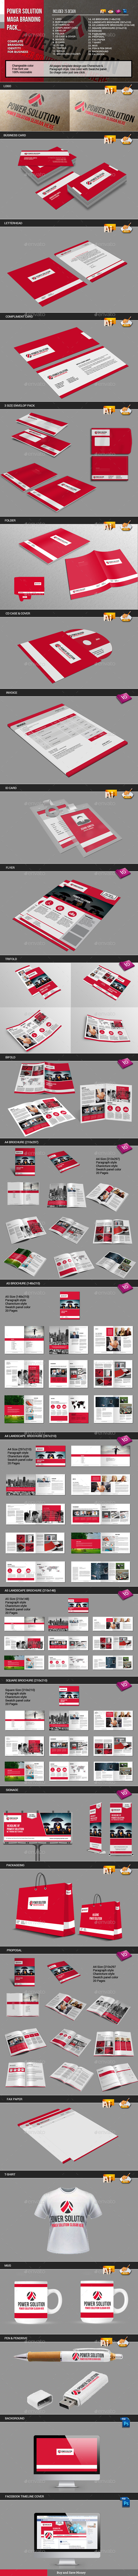 Power Solution Mega Branding Pack - Stationery Print Templates